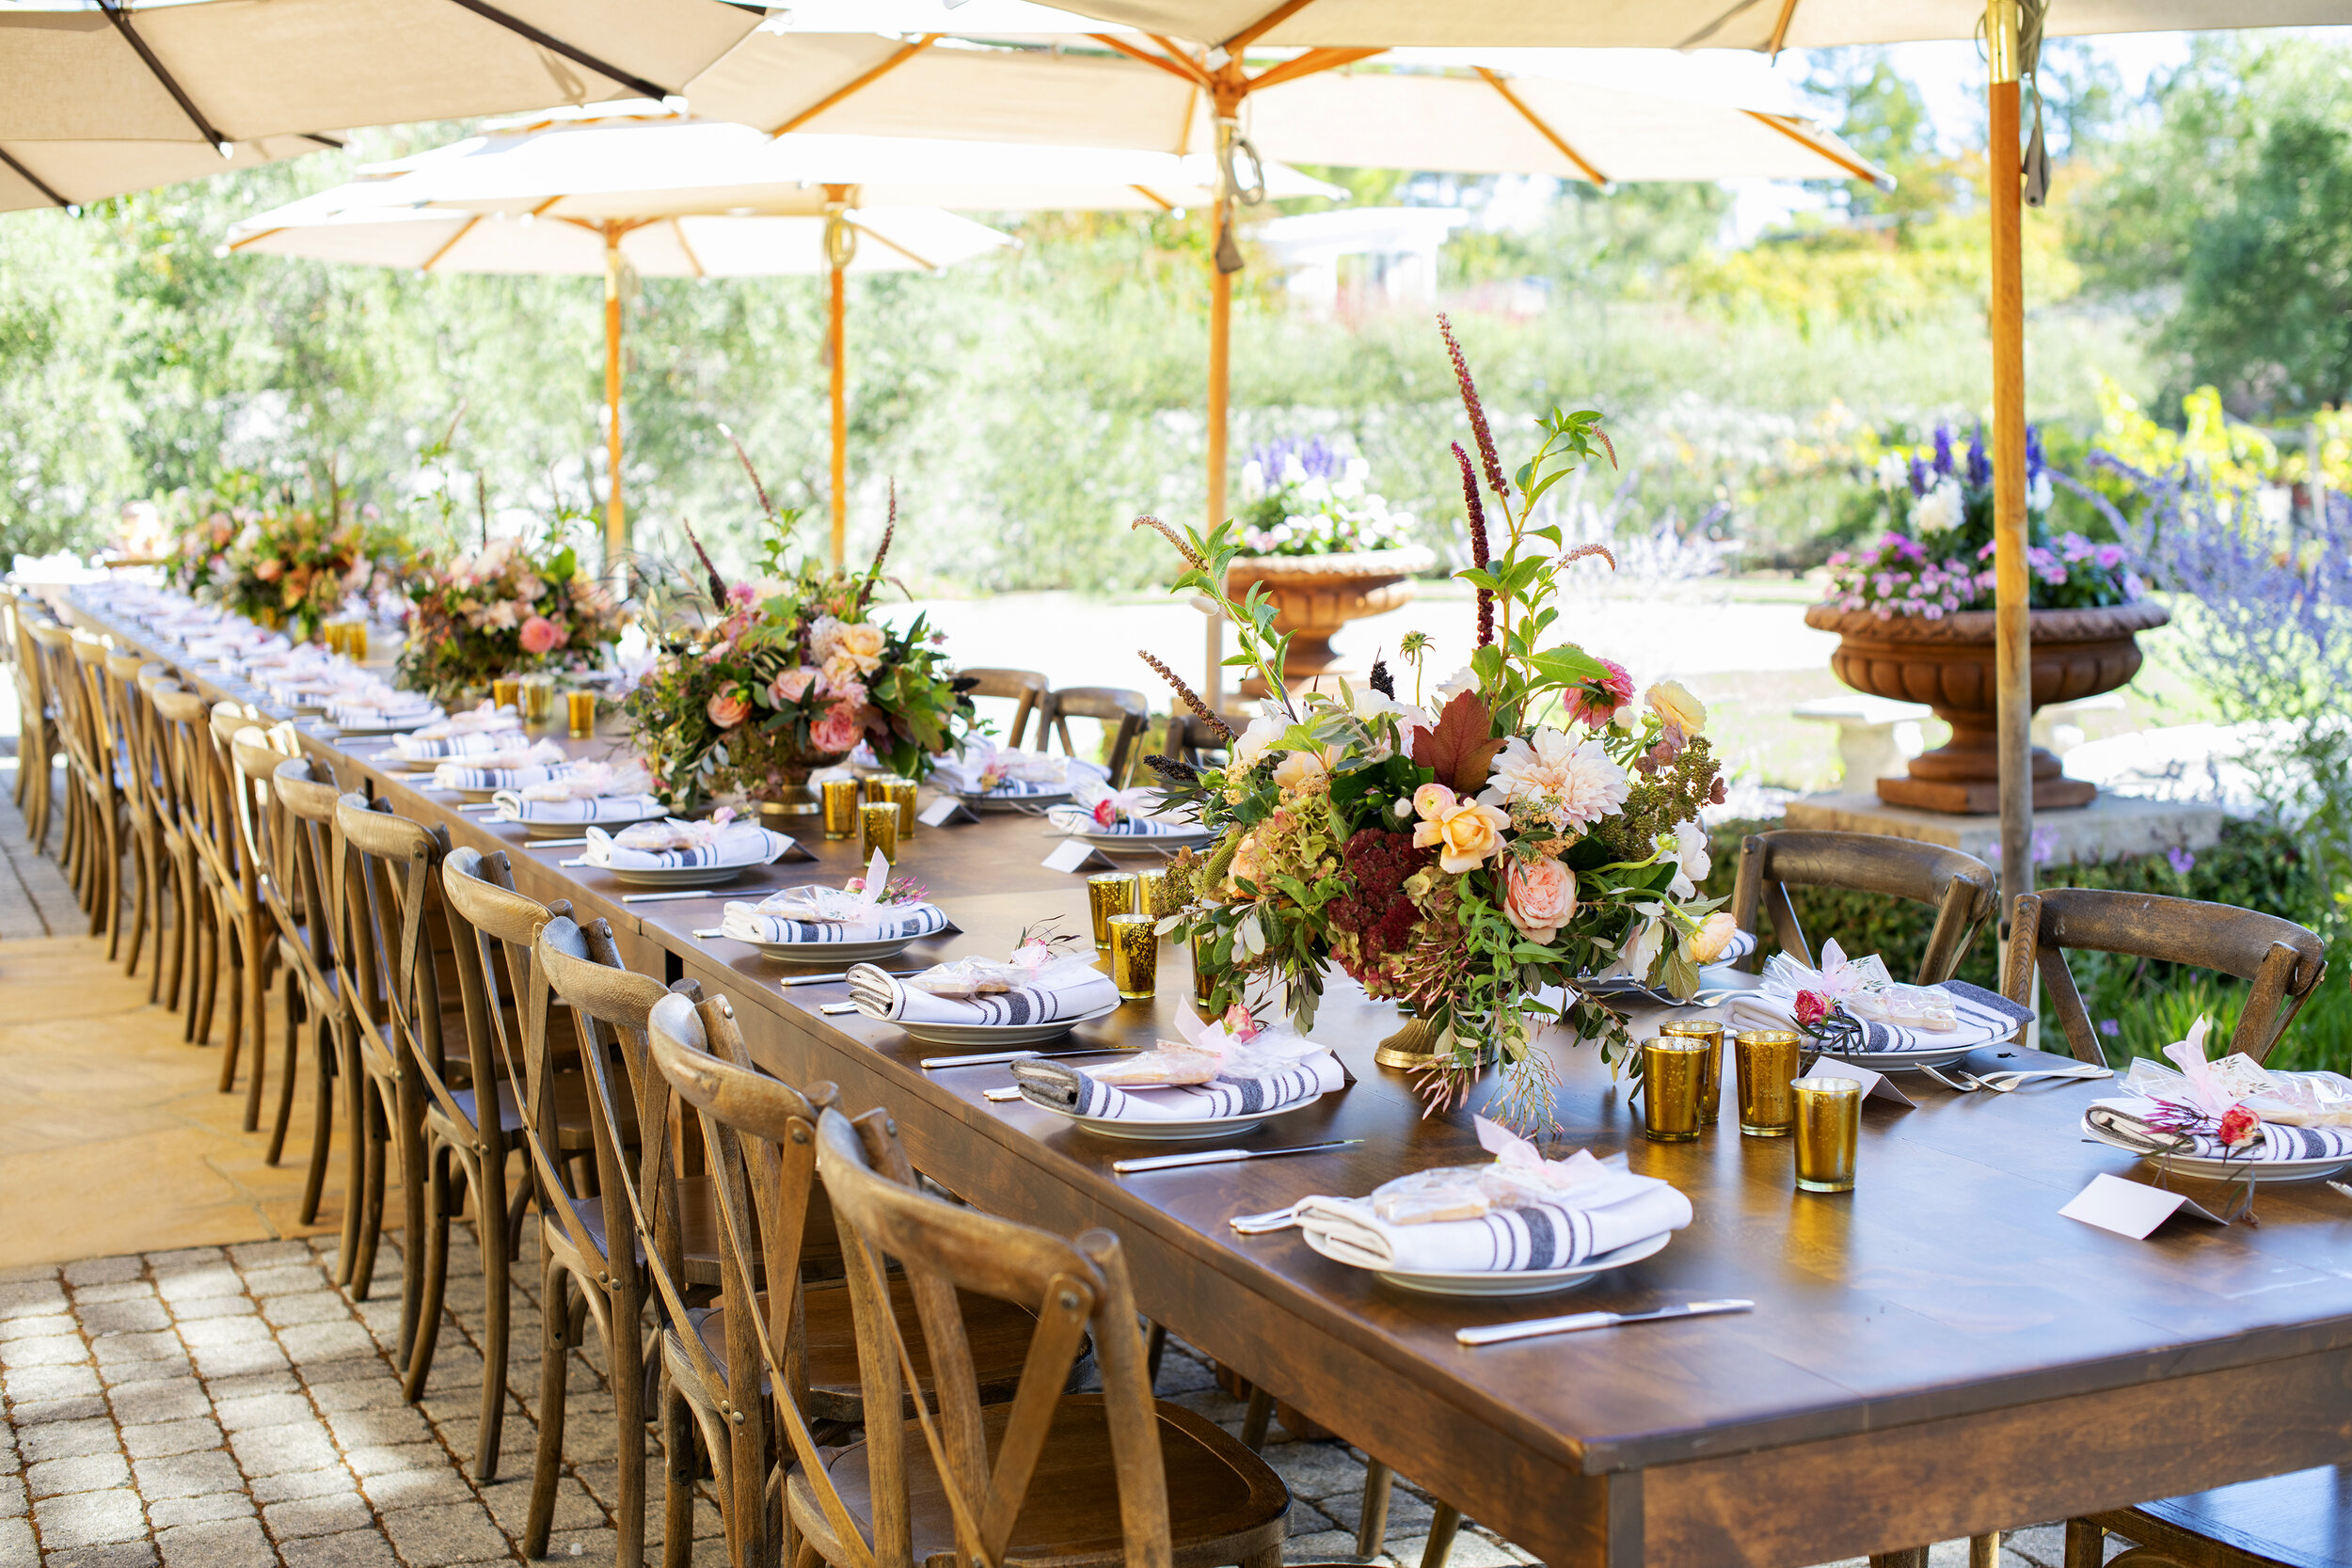 Fall Baby Shower- A long table among the vineyards and olive trees was a perfect setting for this fall tablescape....